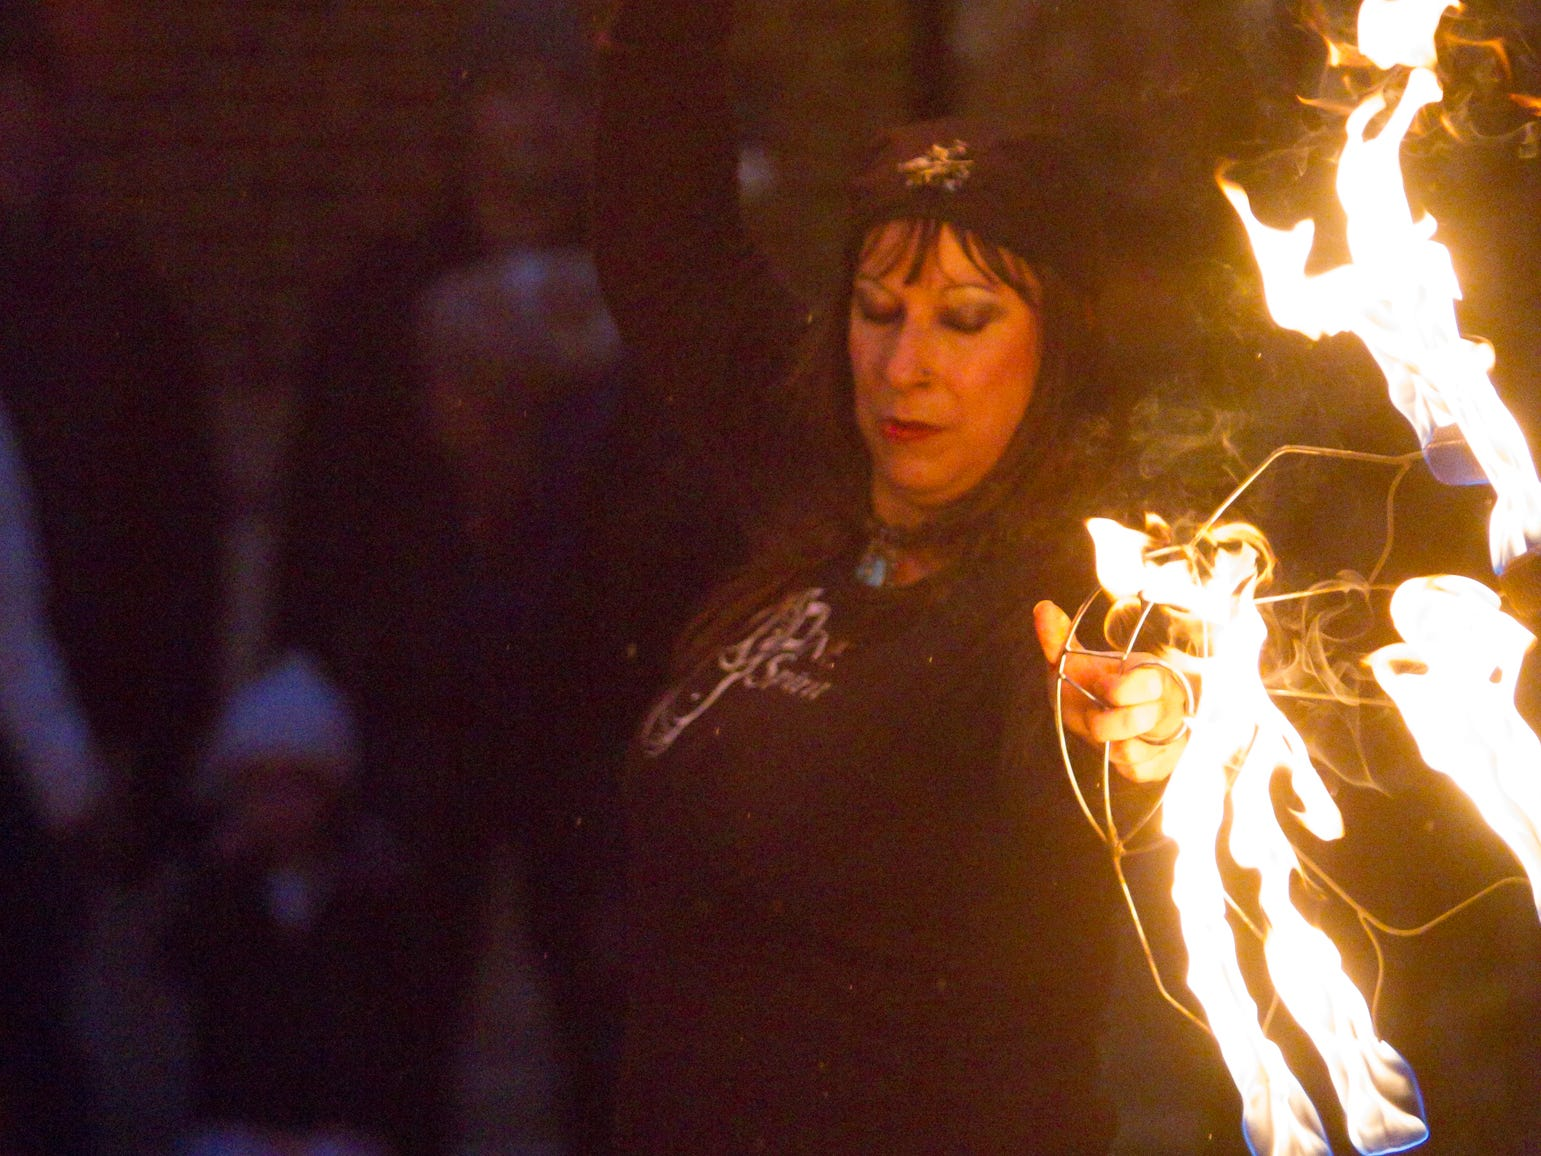 Kelly Hassan of One Spirit Dance and Fitness is among members of the troupe performing a fire dance at the Legend of Sleepy Howell Saturday, Oct. 27, 2018.